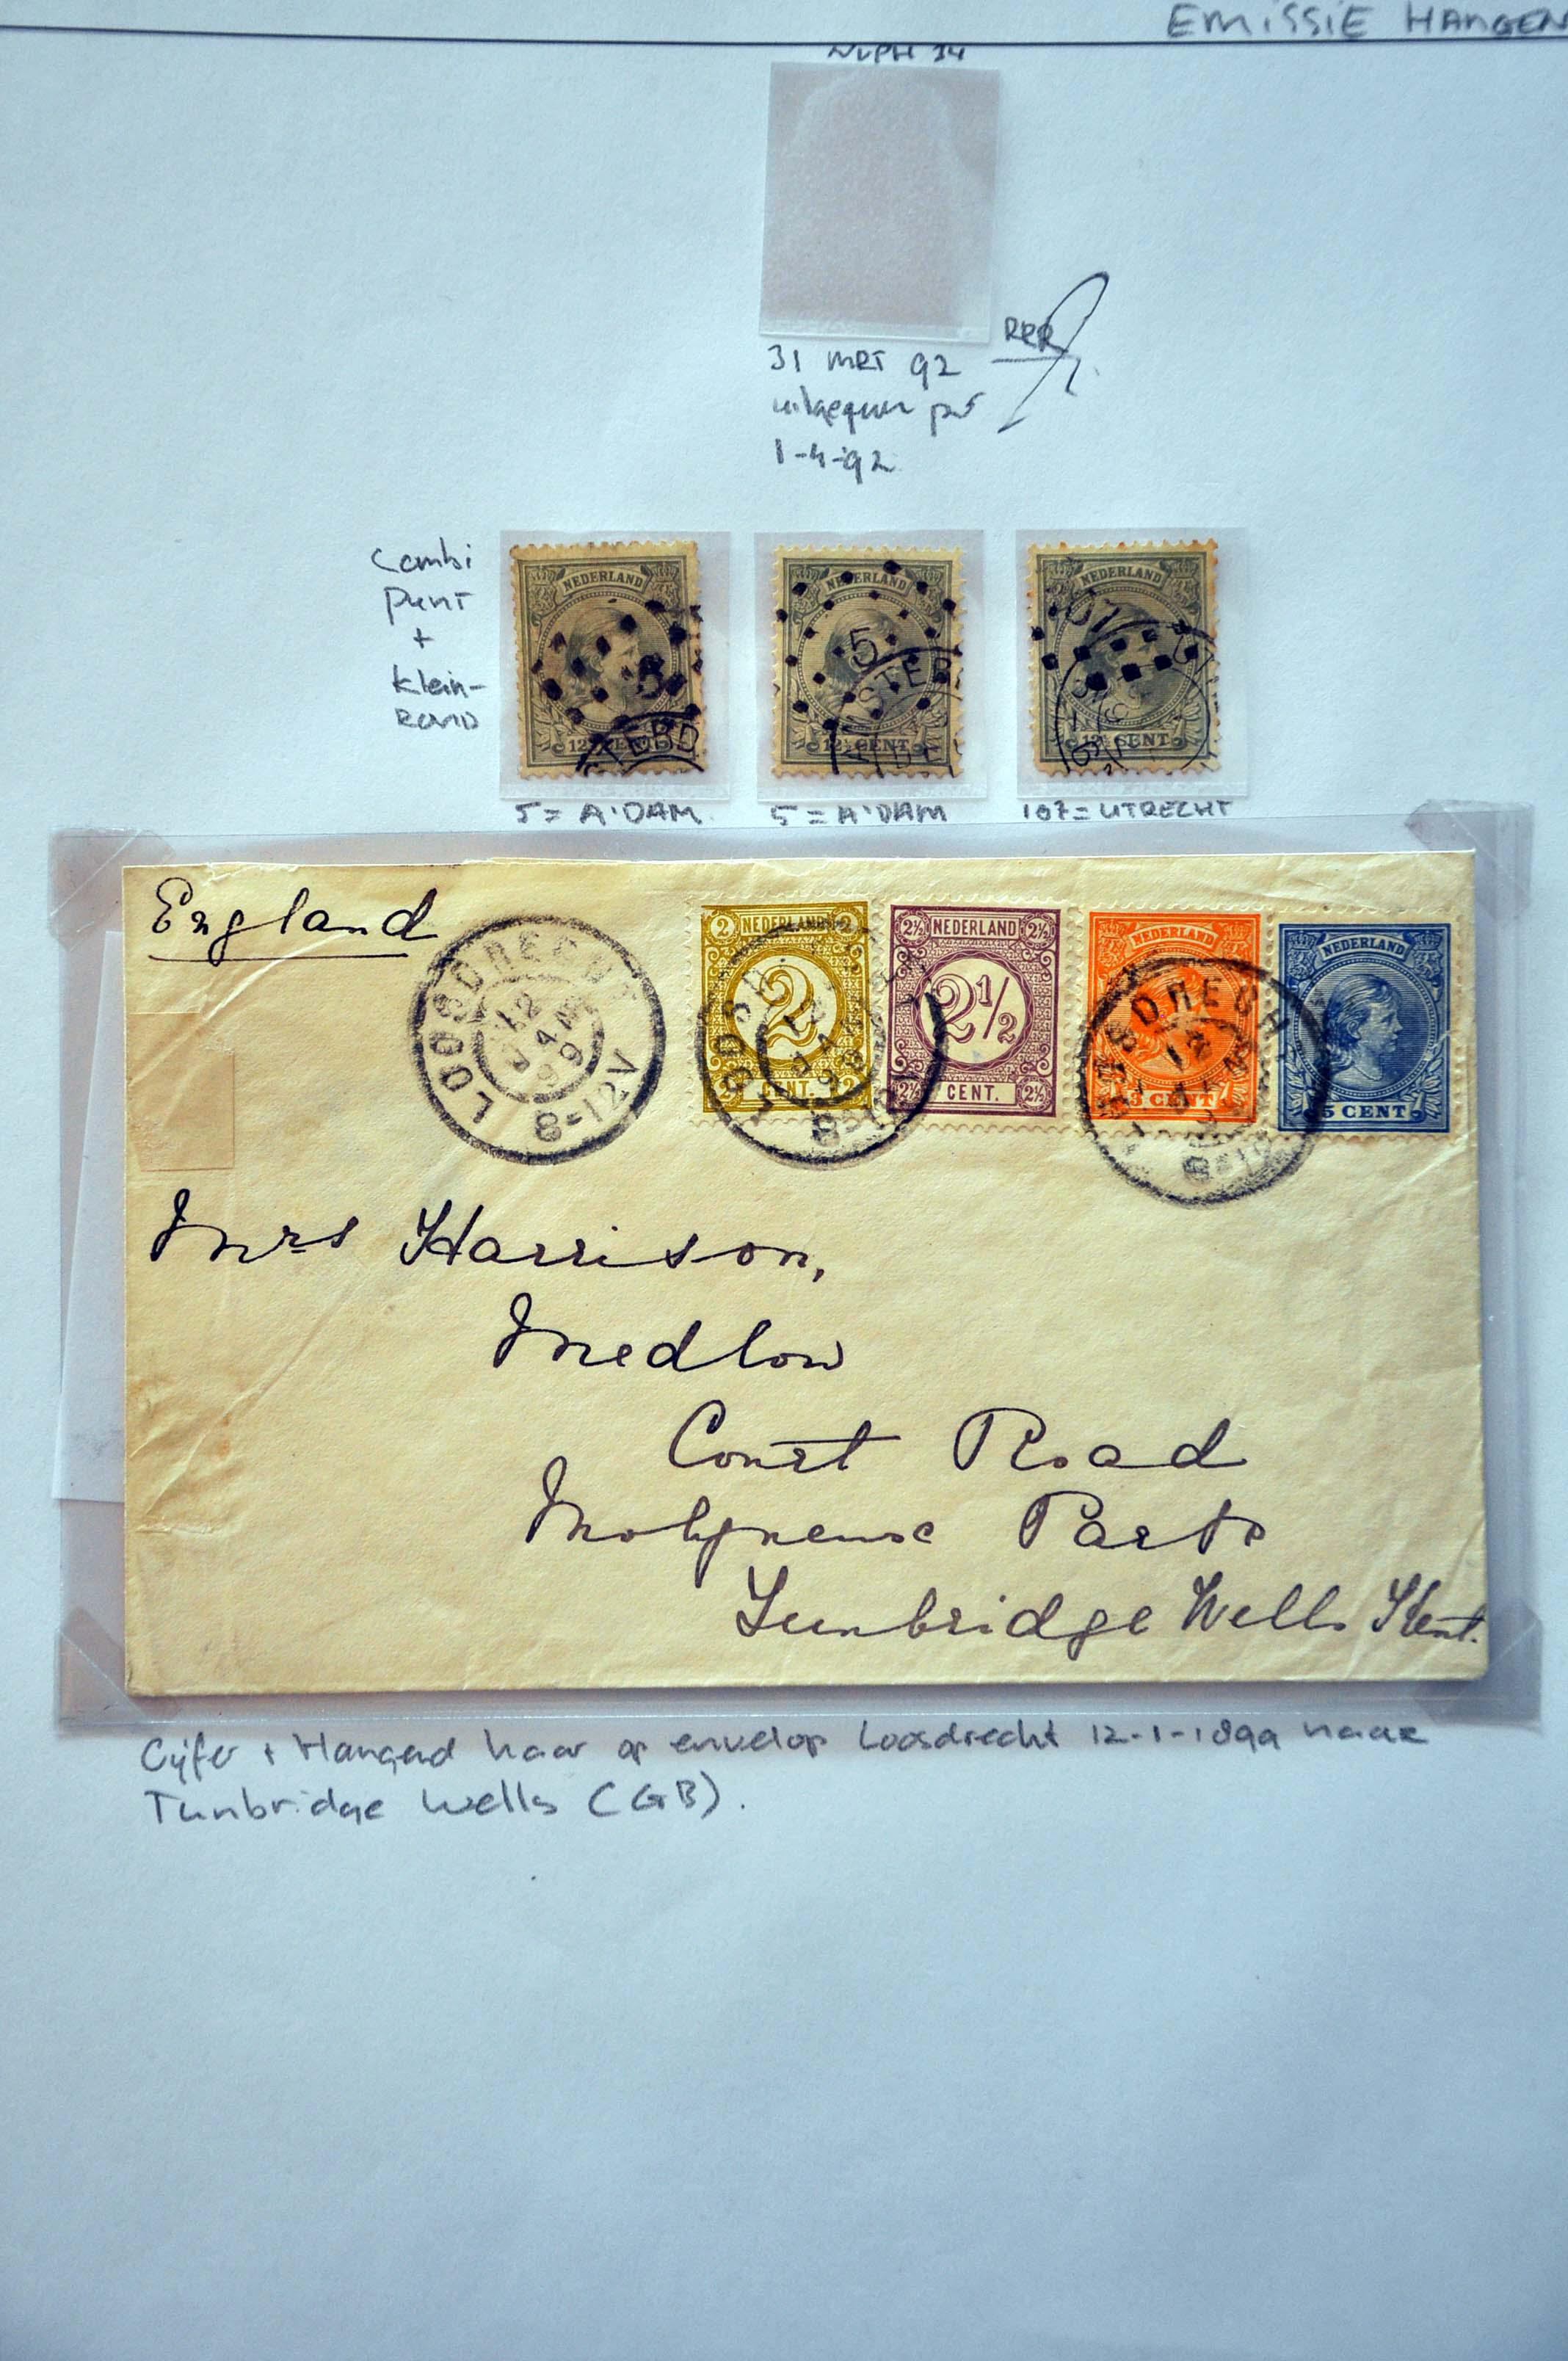 Lot 1609 - Netherlands and former colonies Netherlands -  Corinphila Veilingen Auction 250-253 - Day 2 - Coins, medals, Netherlands and former colonies